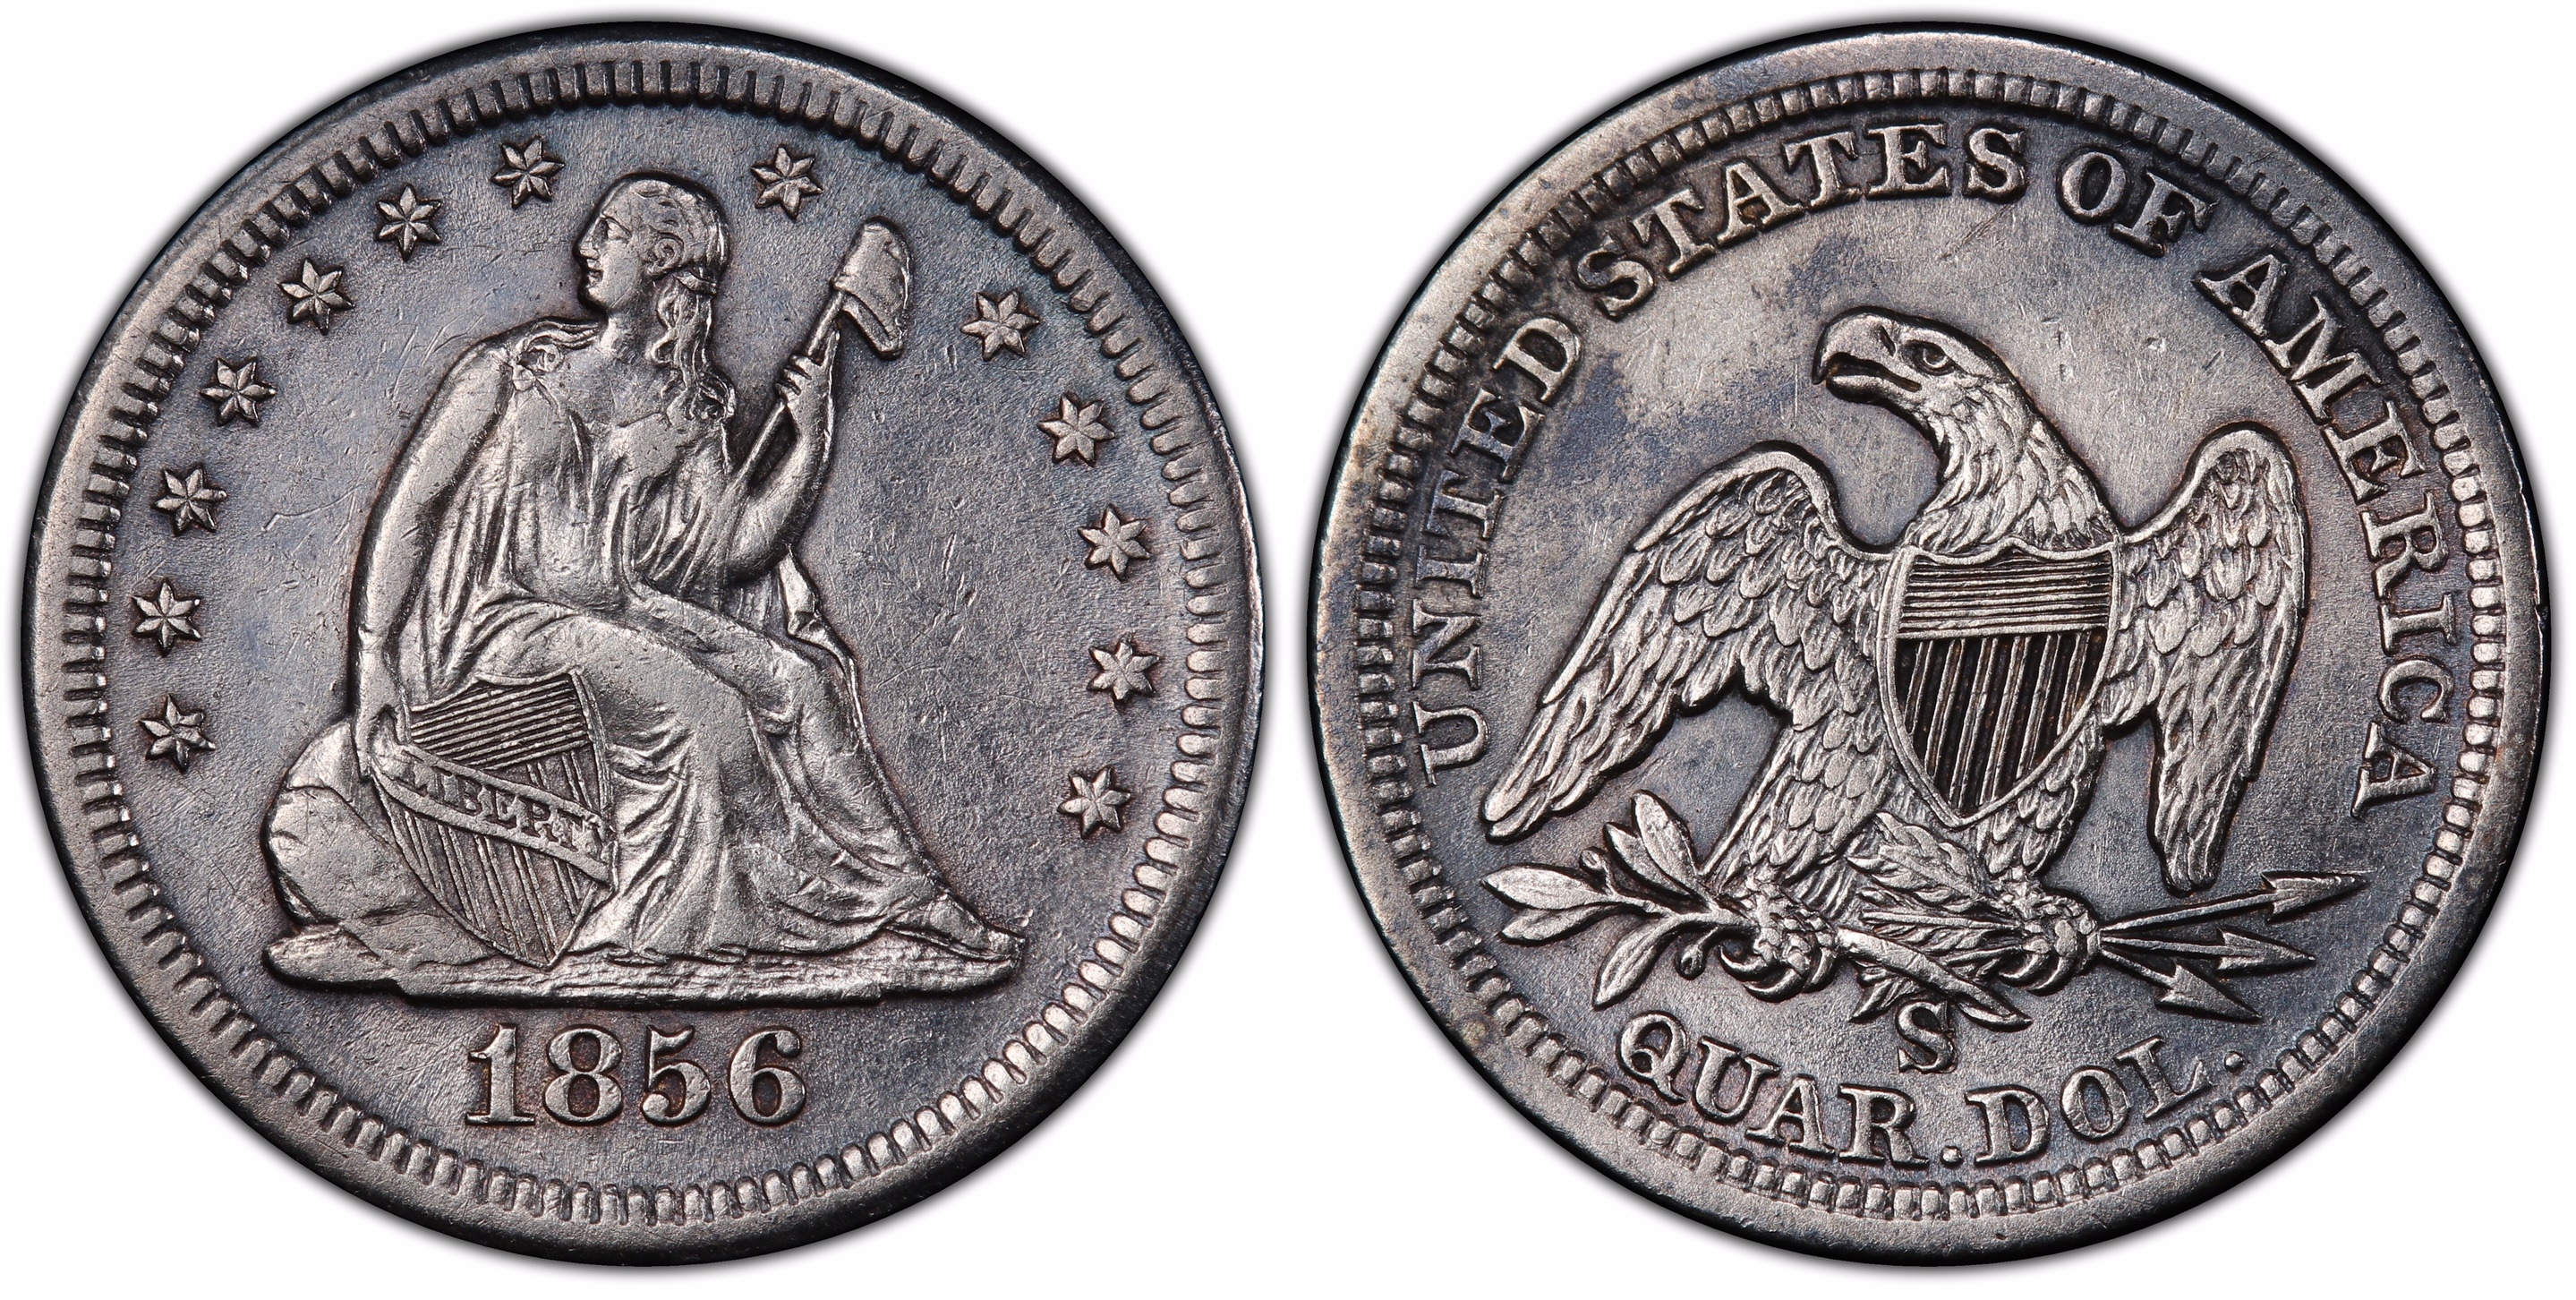 main image for Rare 1856-S/s quarters discovered in amazing SS Central America treasure